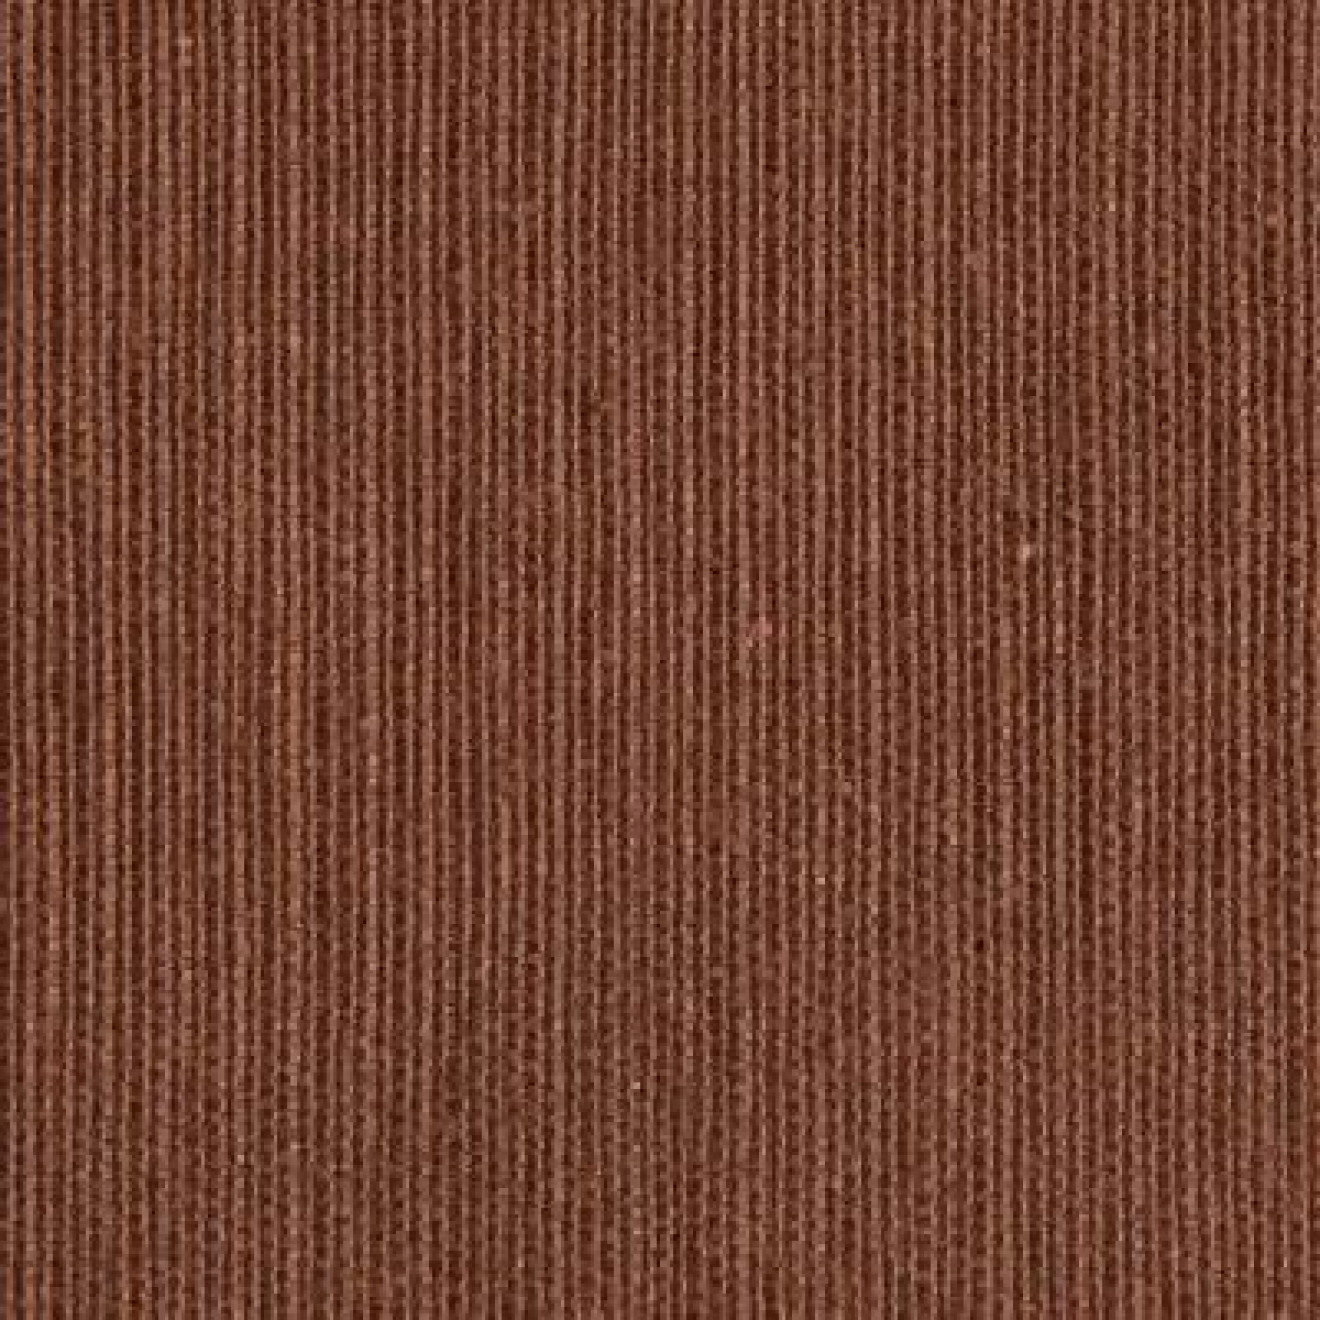 Dreieck - Acrylstoff Loneta Color 110